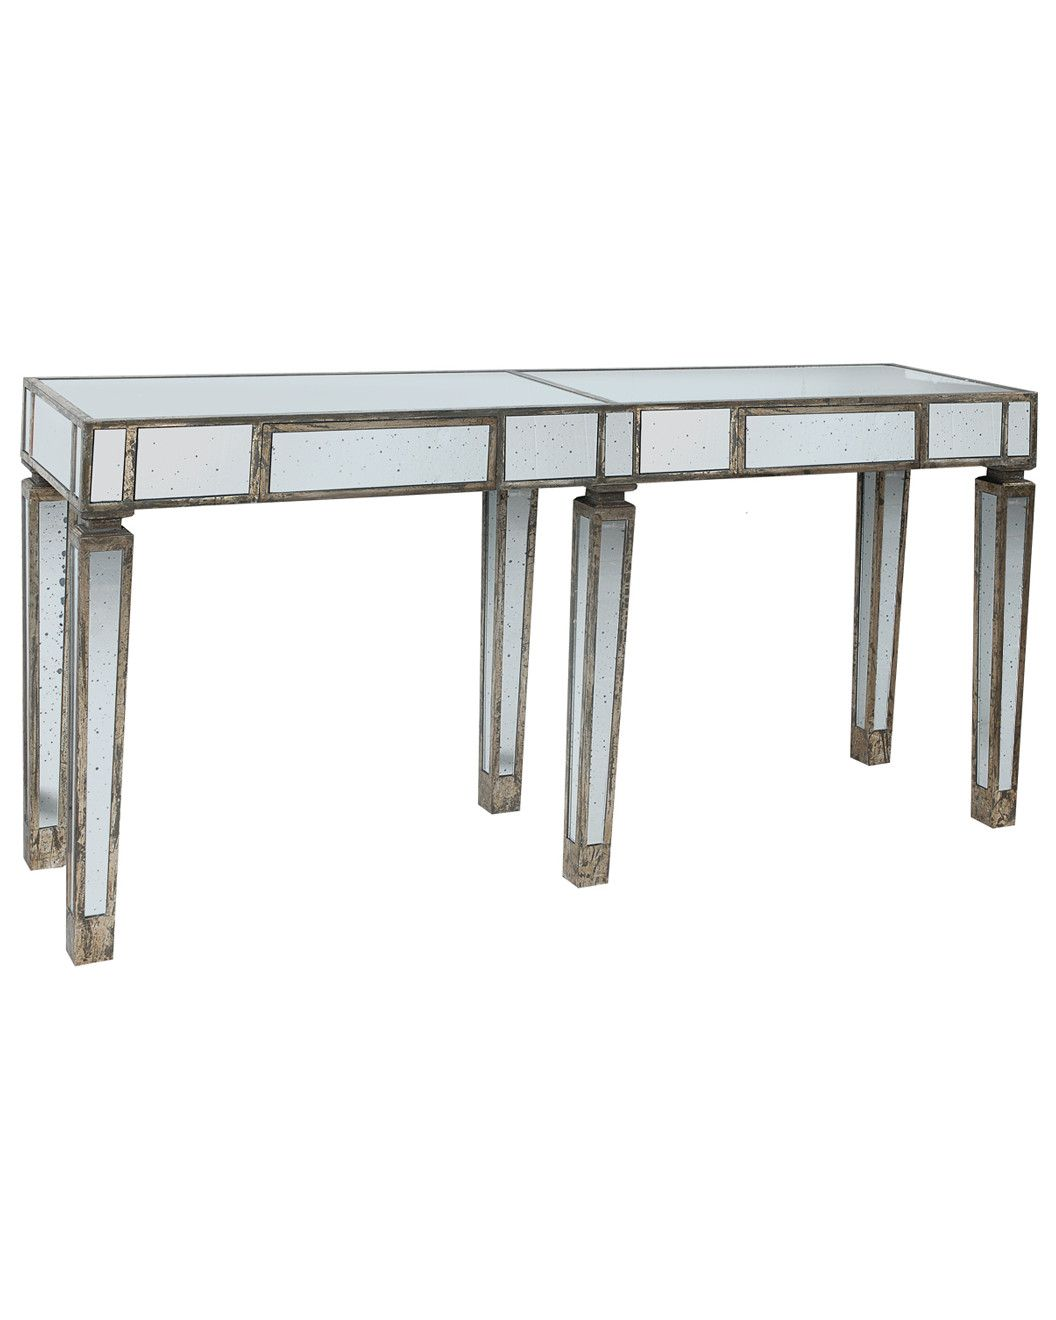 Glass console table with mirror spotted this console table on rue la la shop quickly  for the